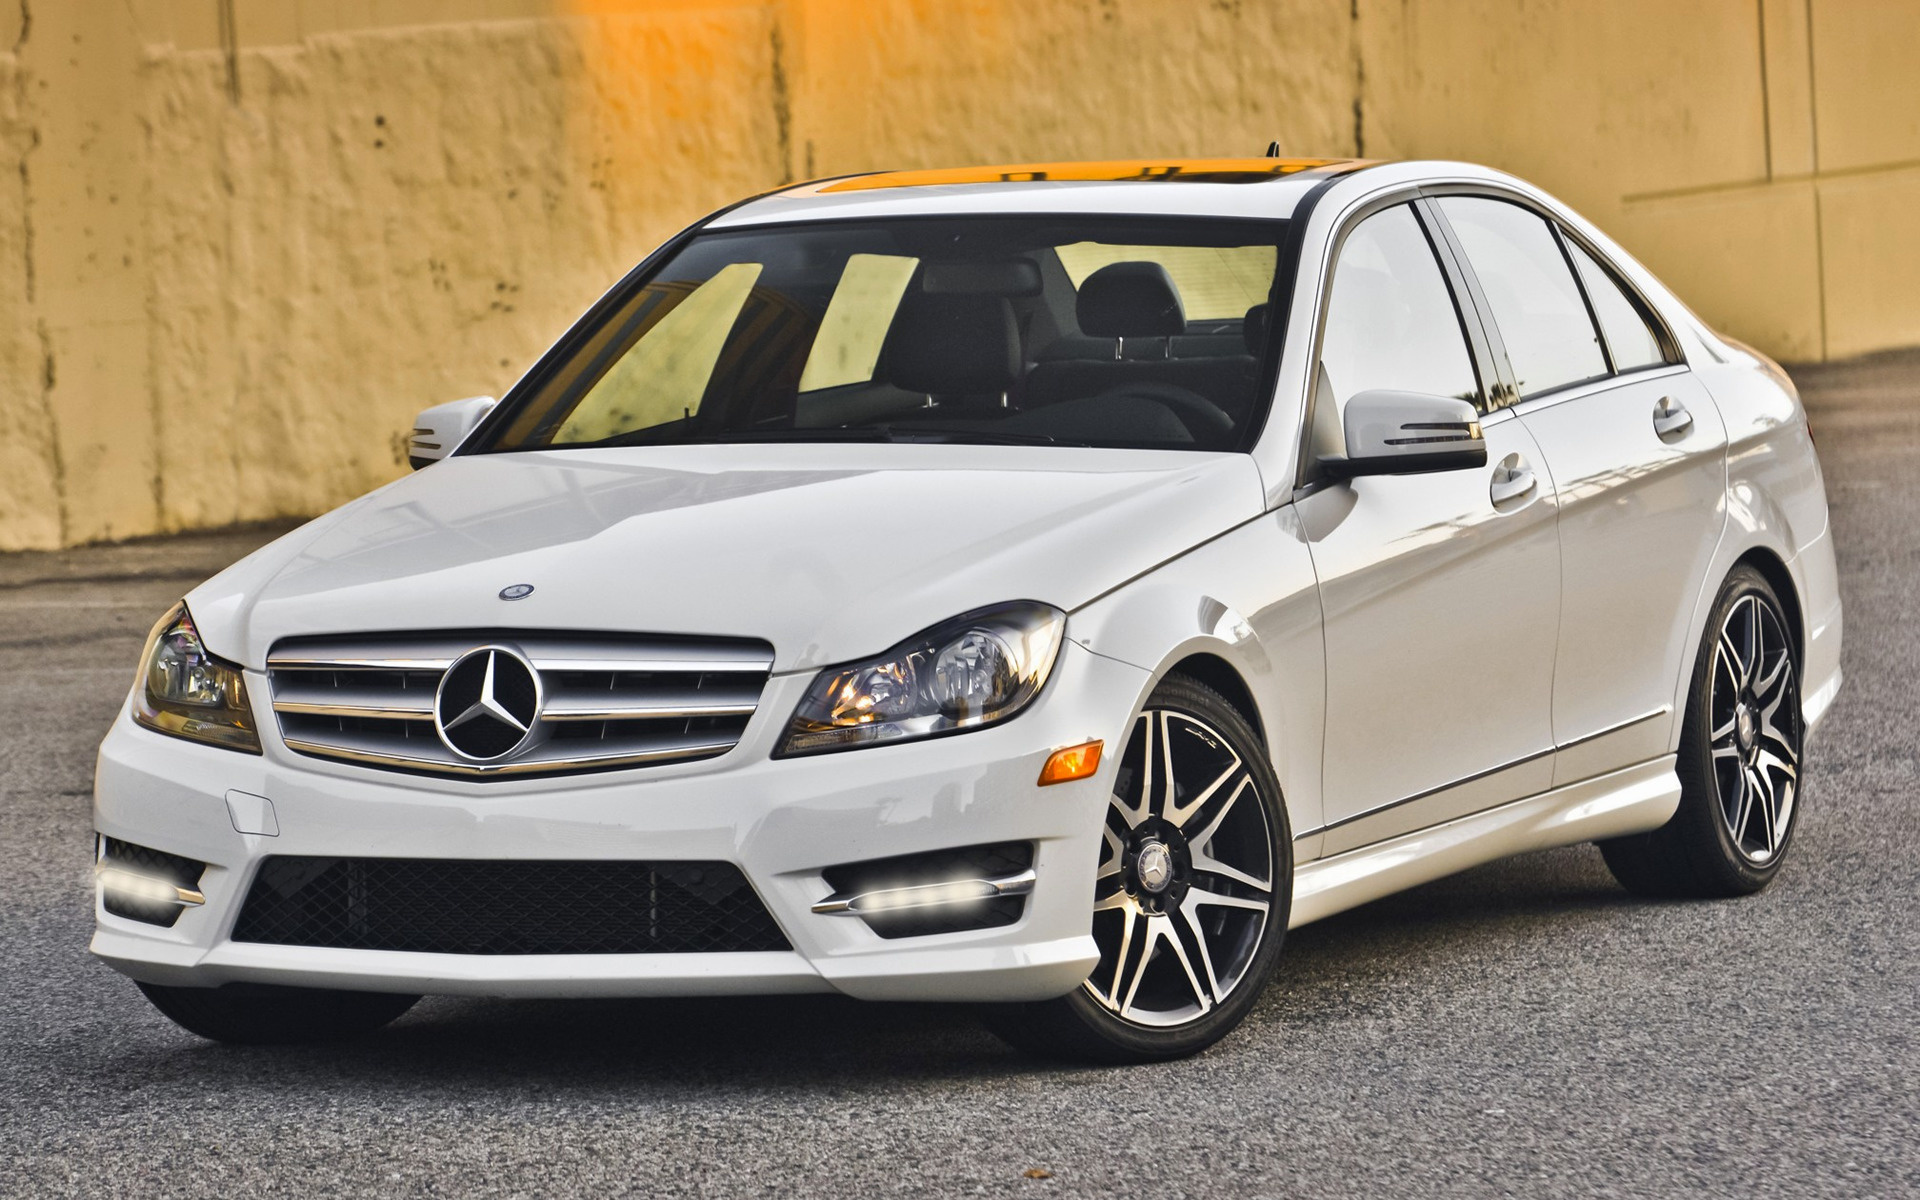 2011 Mercedes-Benz C-Class AMG Styling (US) - Wallpapers ...